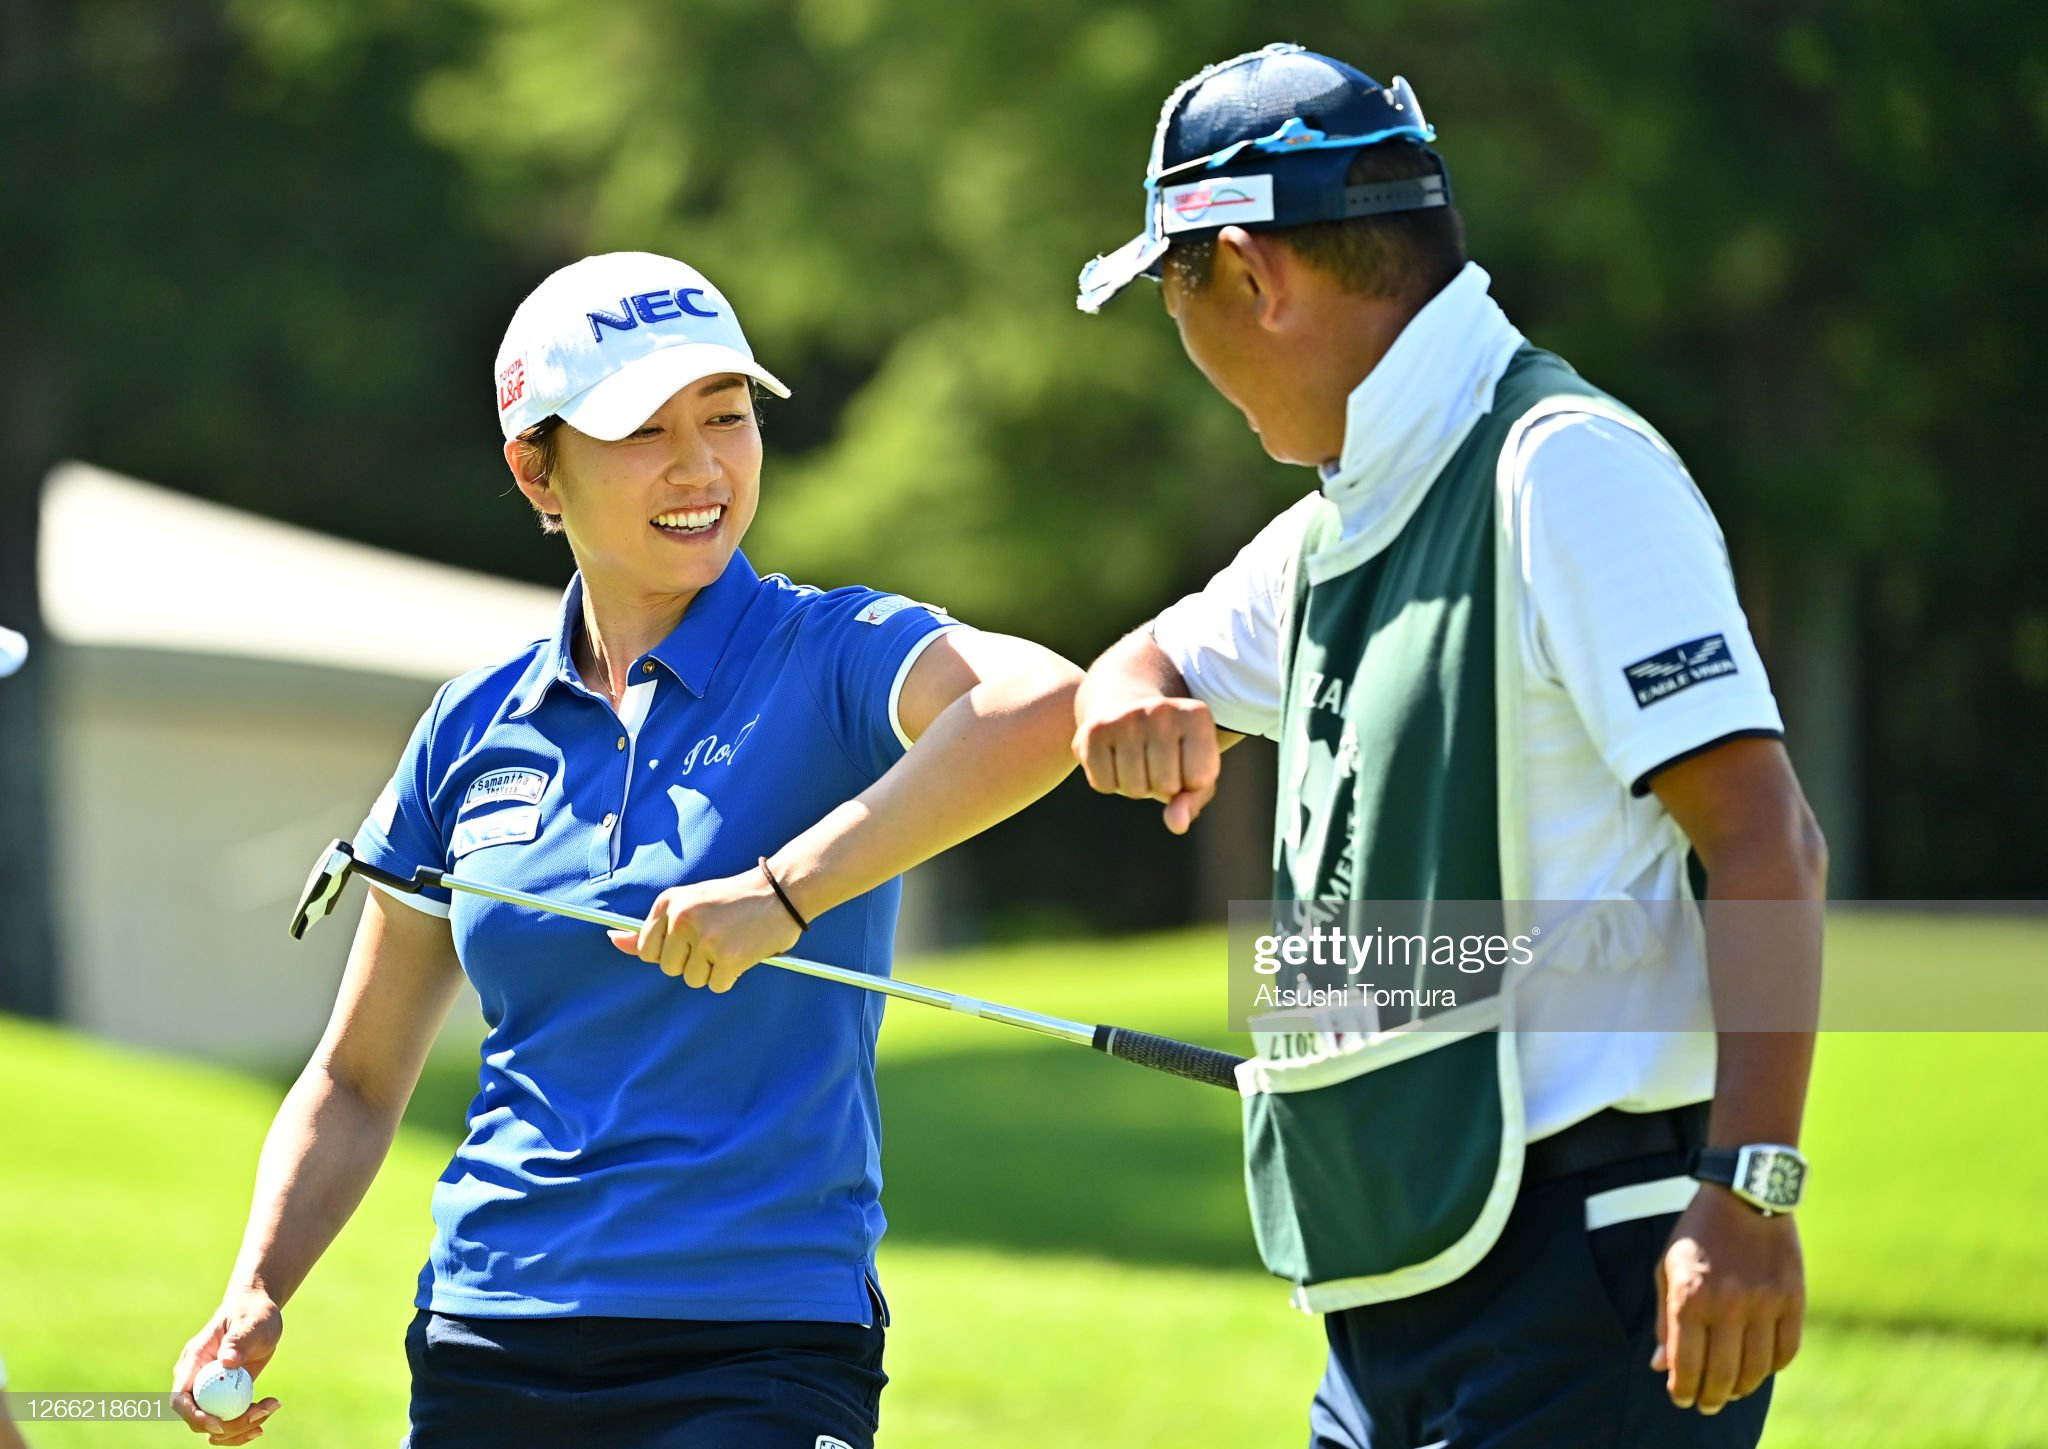 https://media.gettyimages.com/photos/erina-hara-of-japan-celebrates-holing-out-with-the-birdie-on-the-18th-picture-id1266218601?s=2048x2048